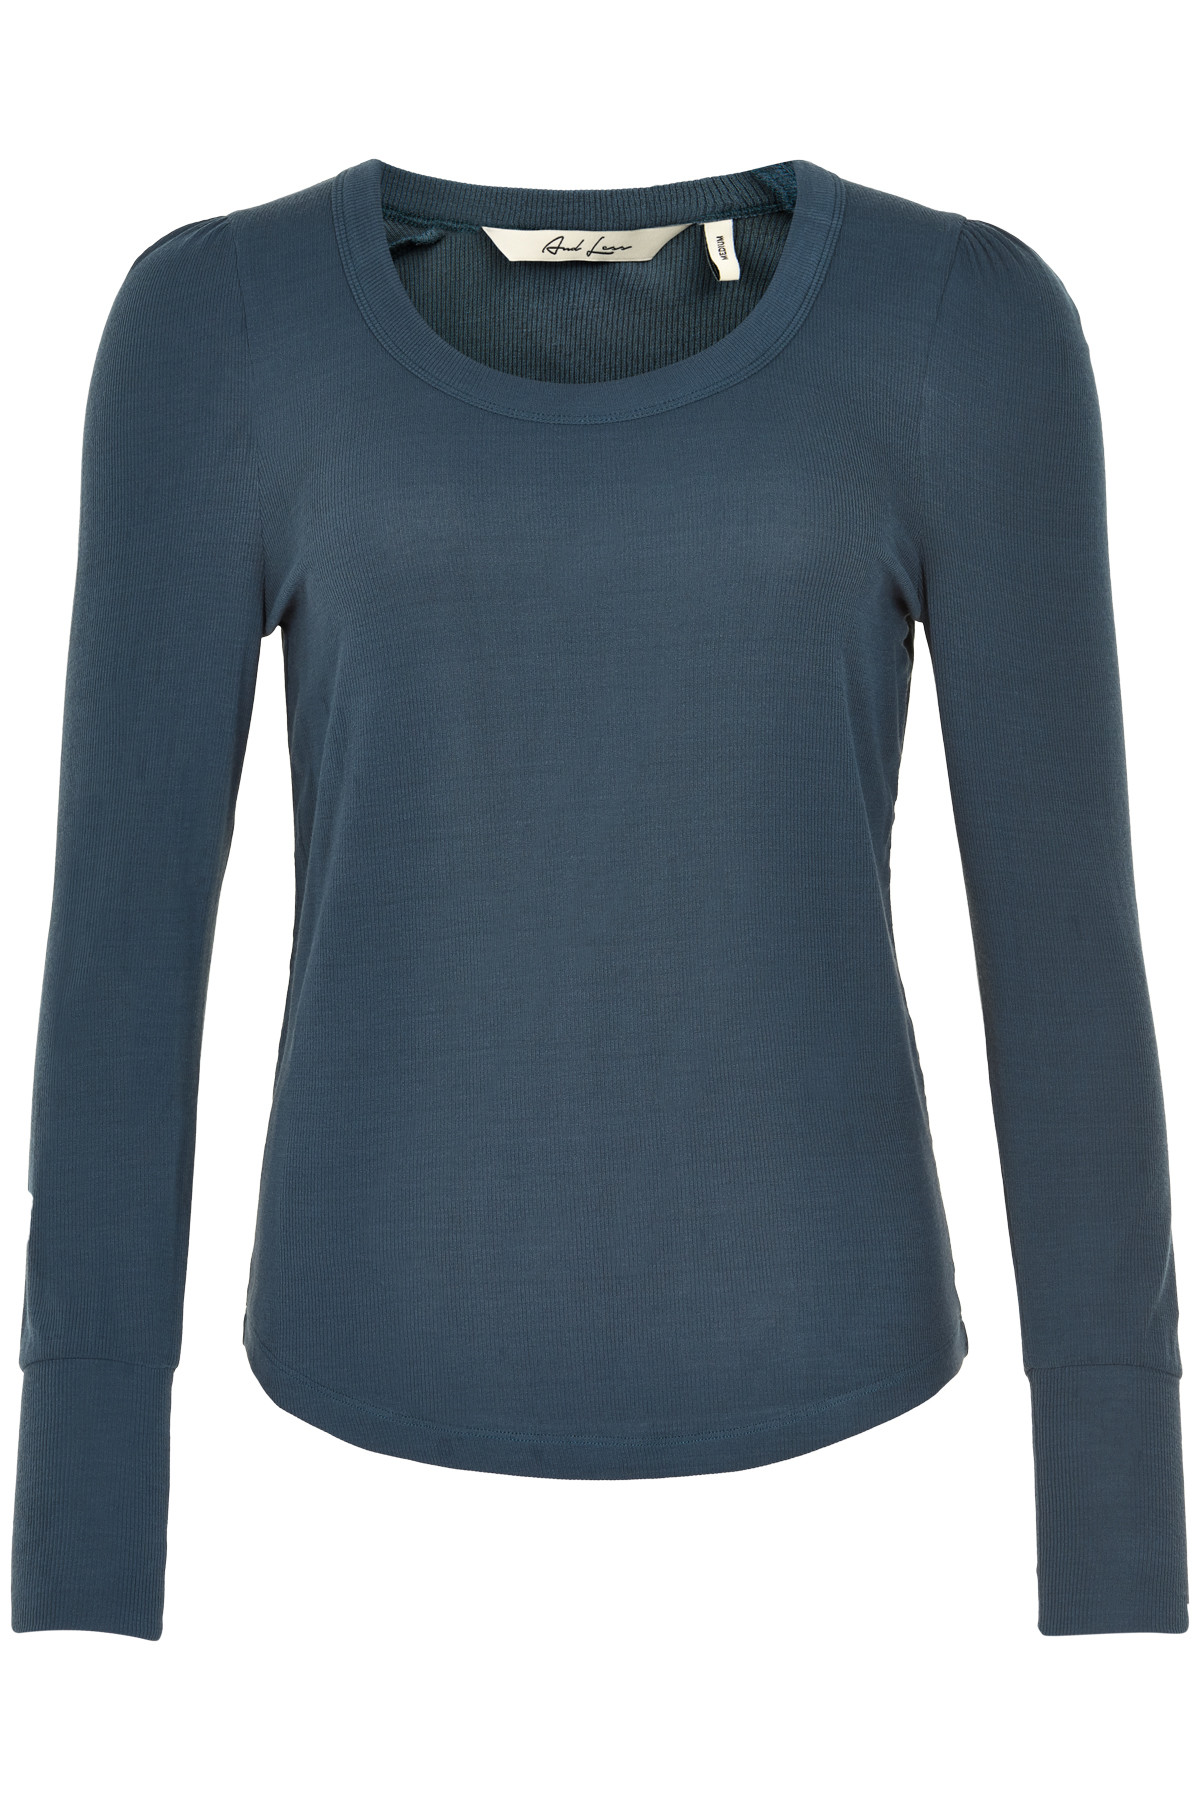 Image of   AND LESS NEW INIGA BLUSE 5419302 O (Orion Blue, XS)